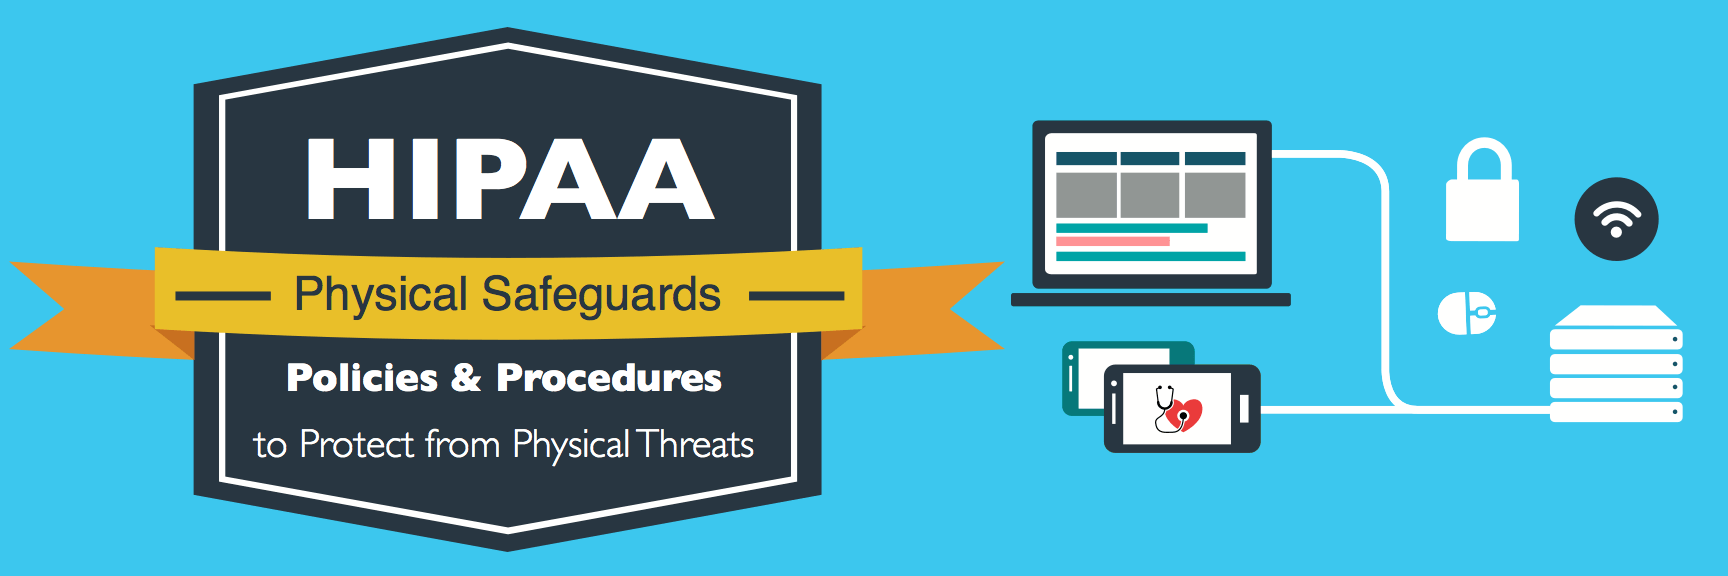 Infographic: A guide to the Physical Safeguards of HIPAA's security rule